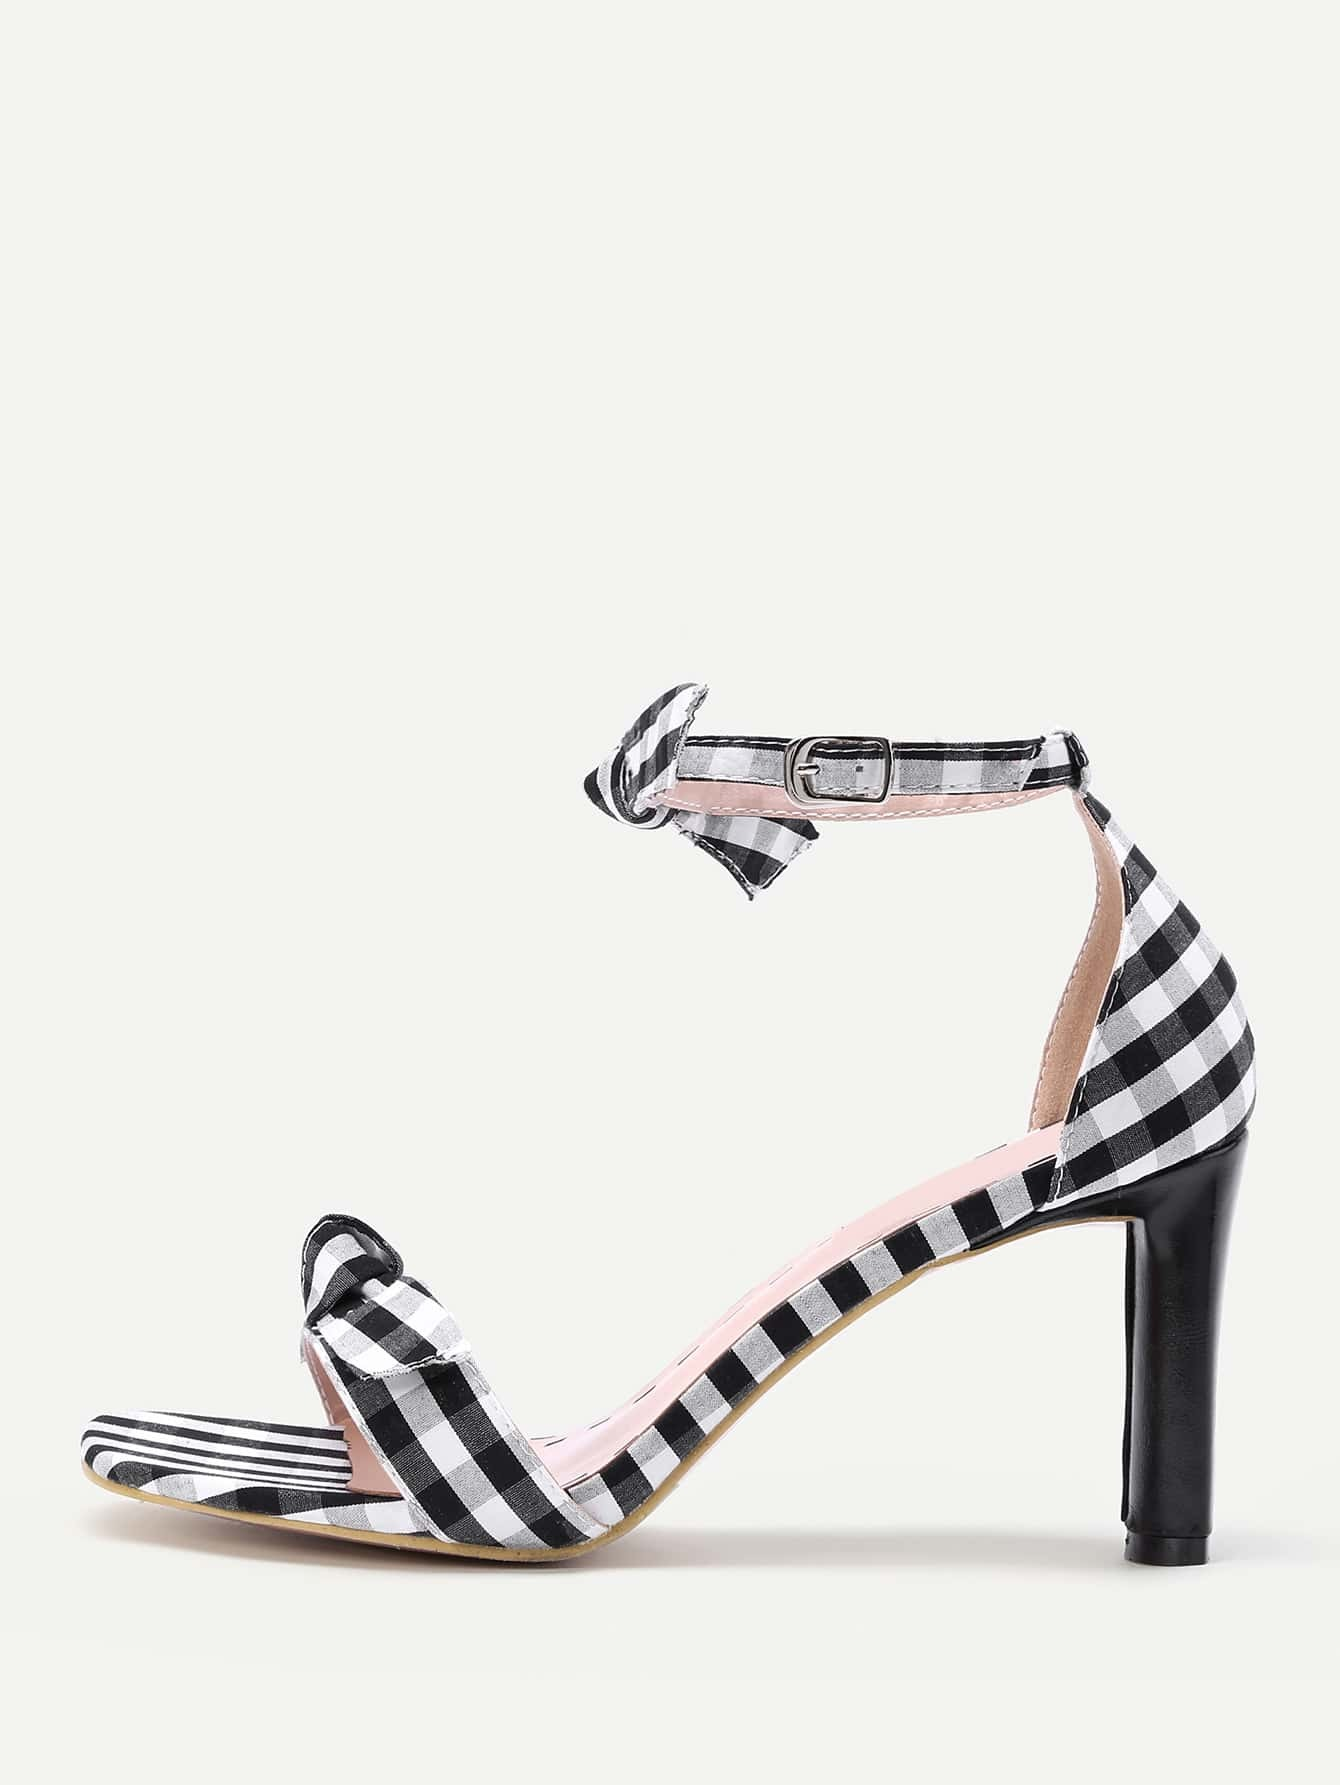 Bow Tie Check Print Heeled Sandals shoes170626810